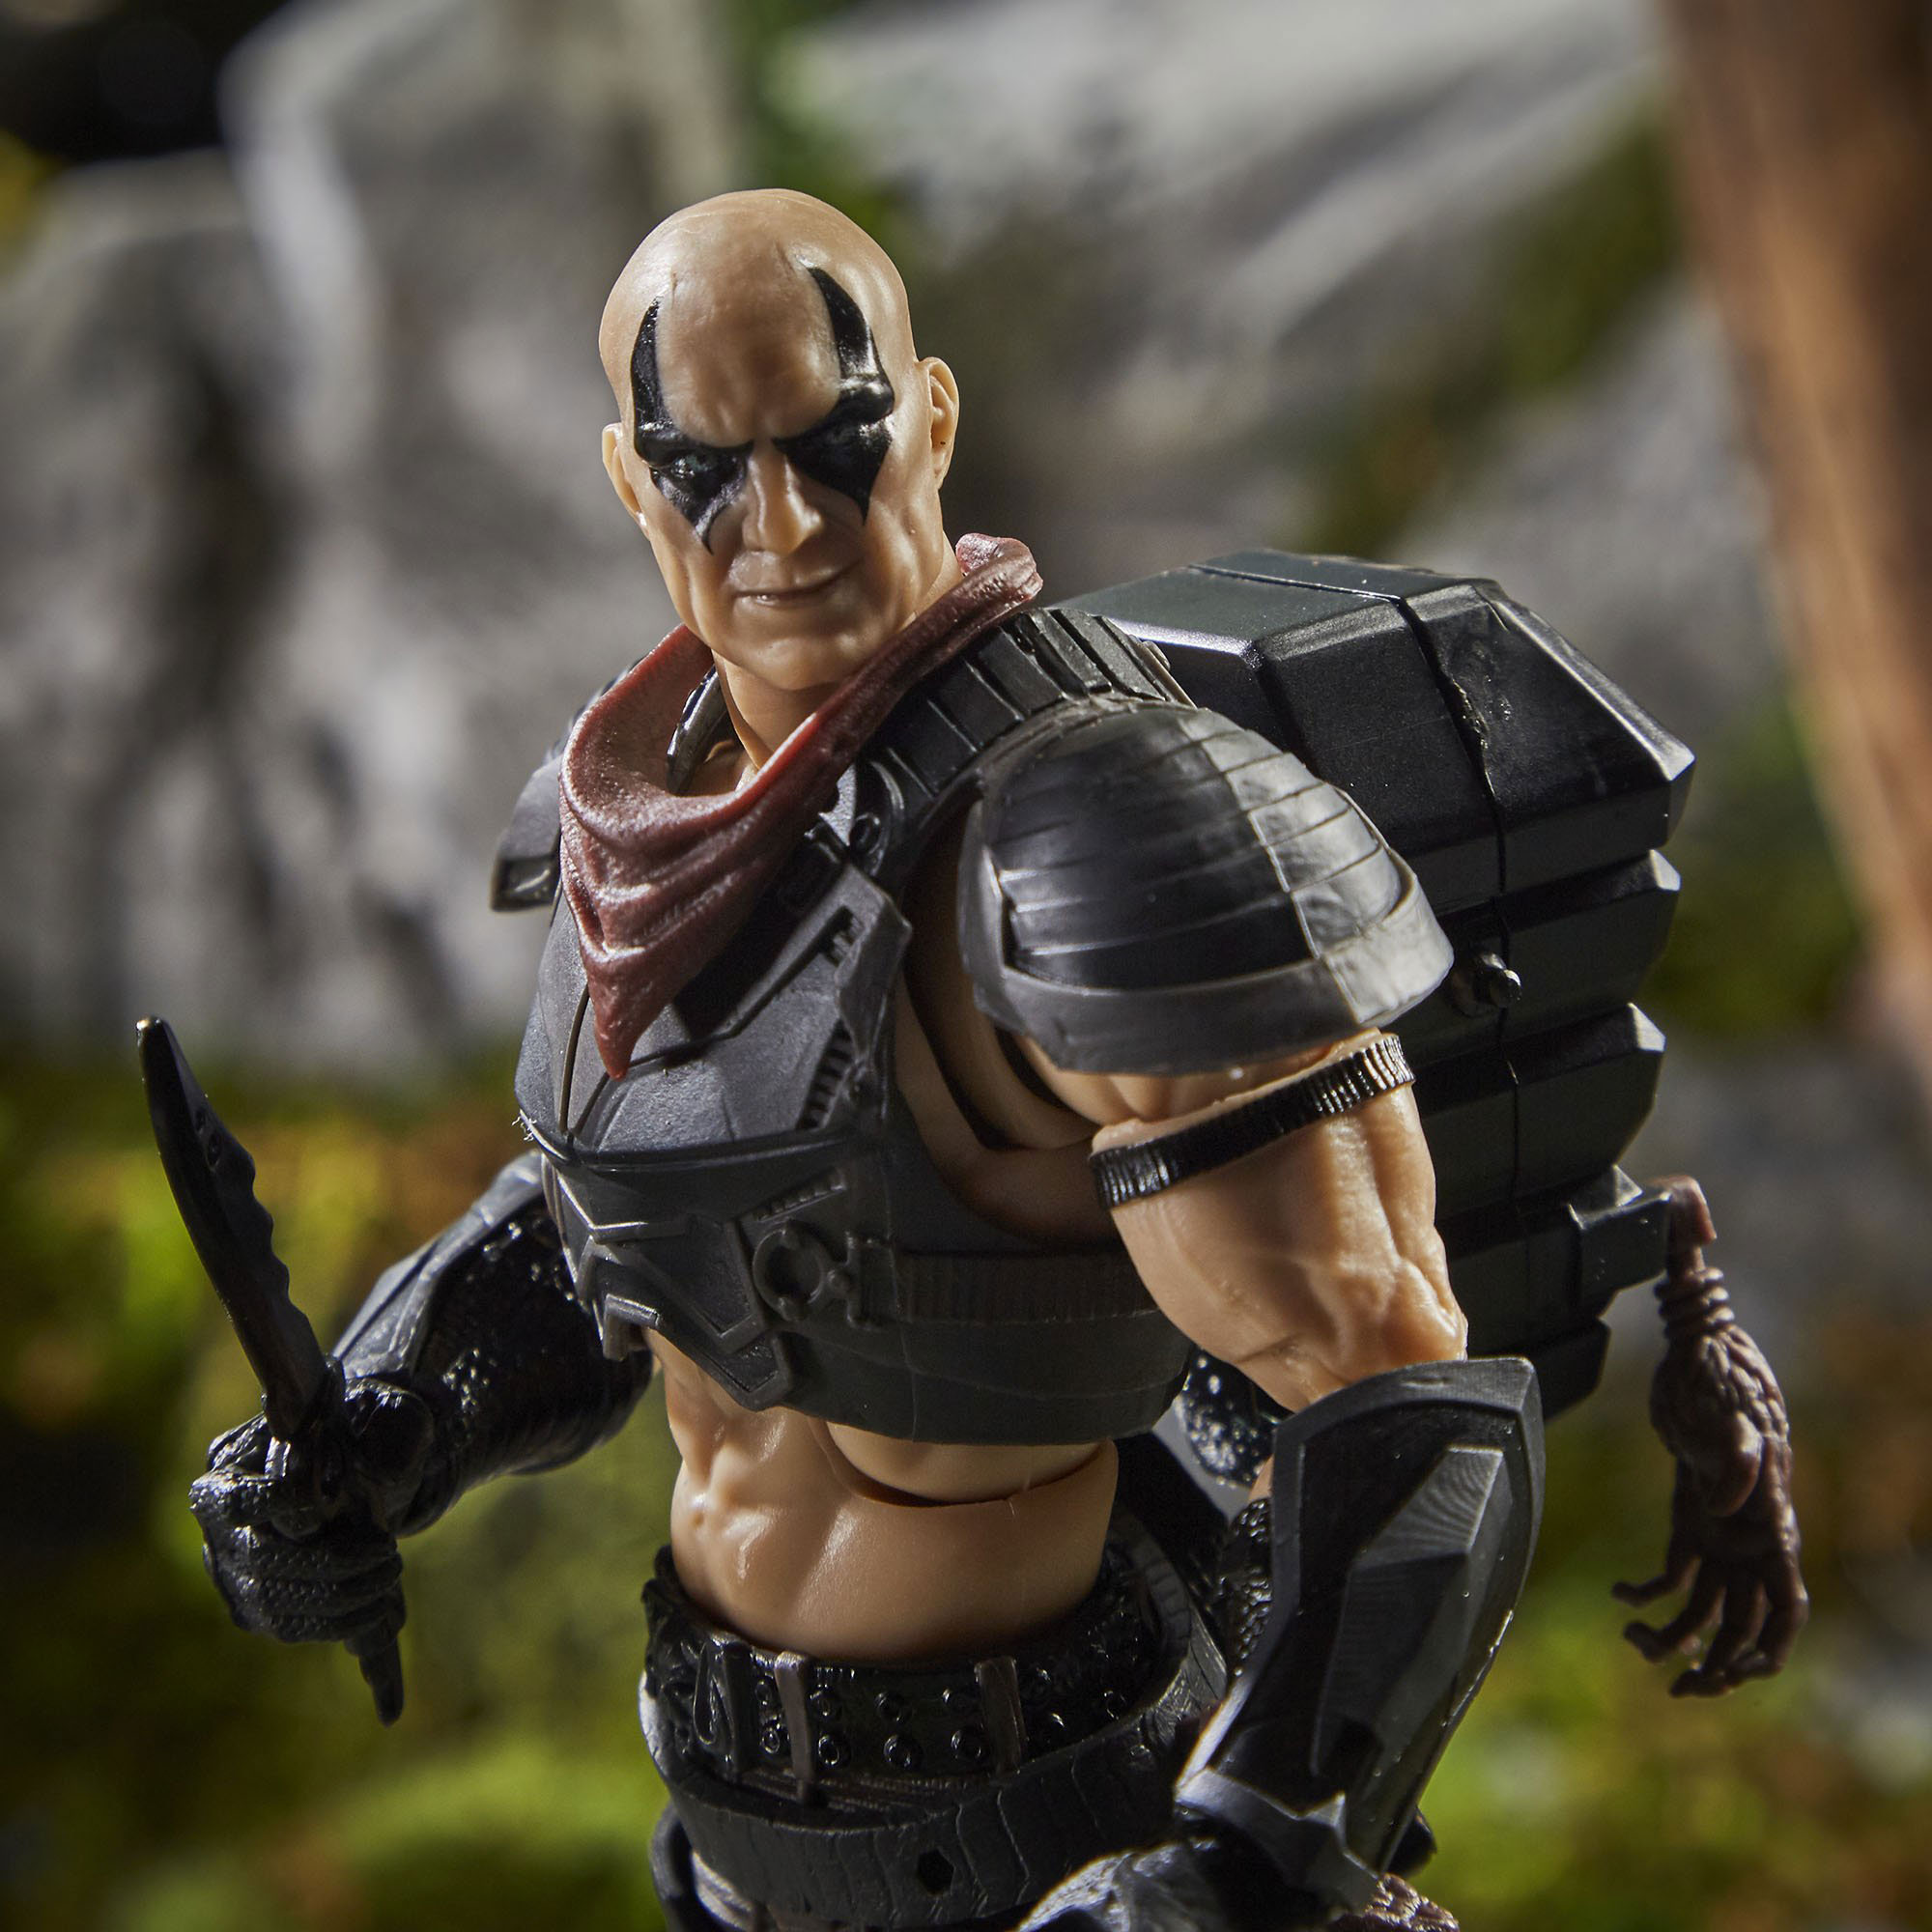 gi-joe-classified-series-zartan-action-figure-7